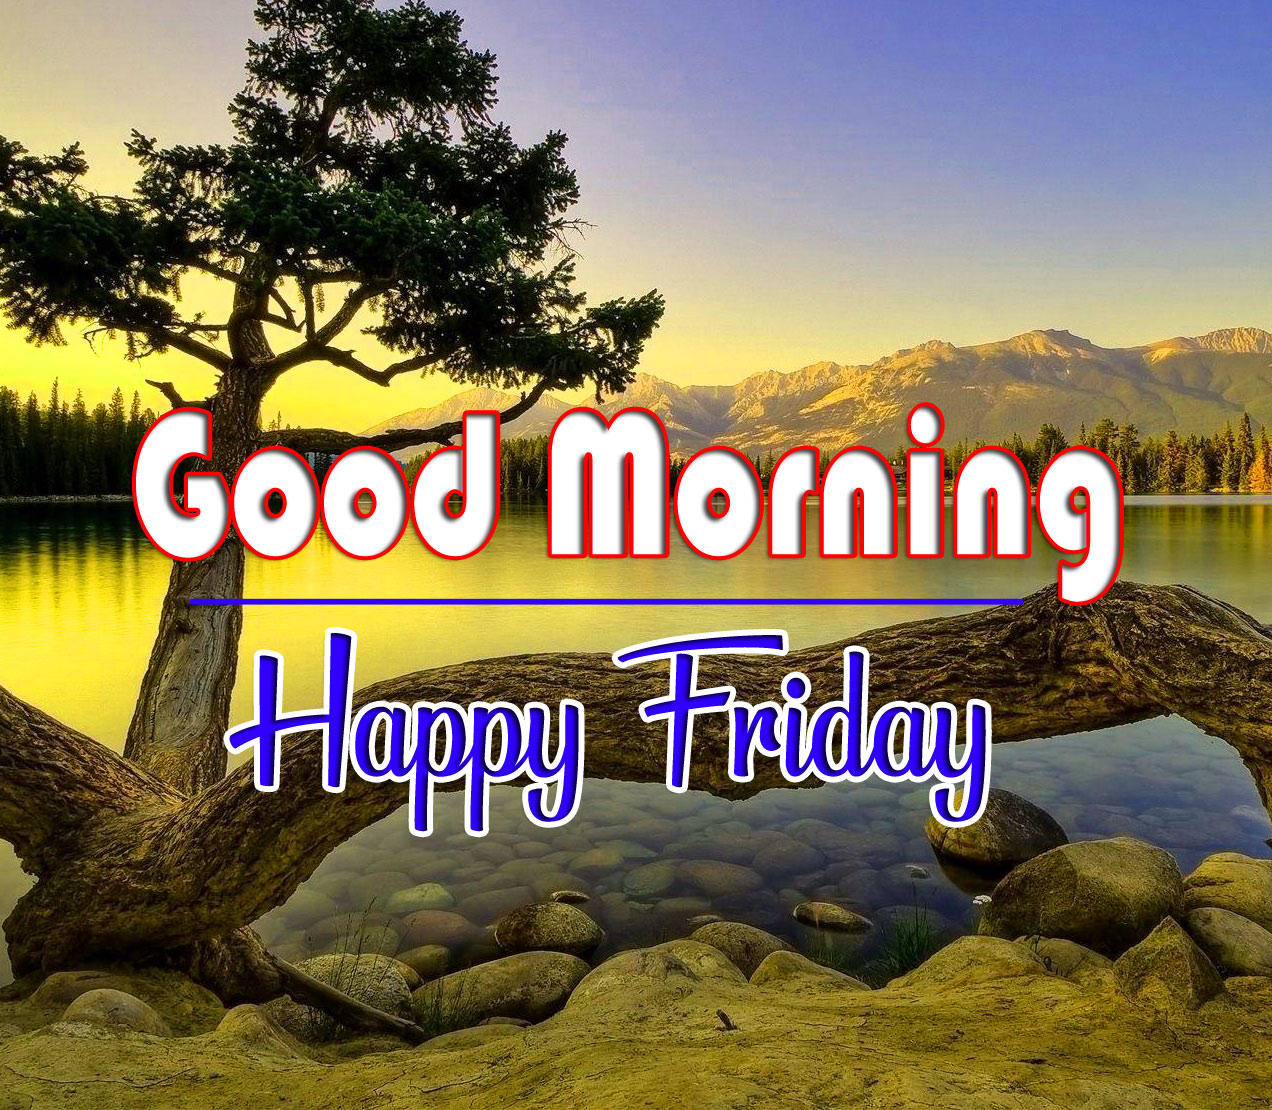 friday Good morning Wishes Wallpaper Free HD